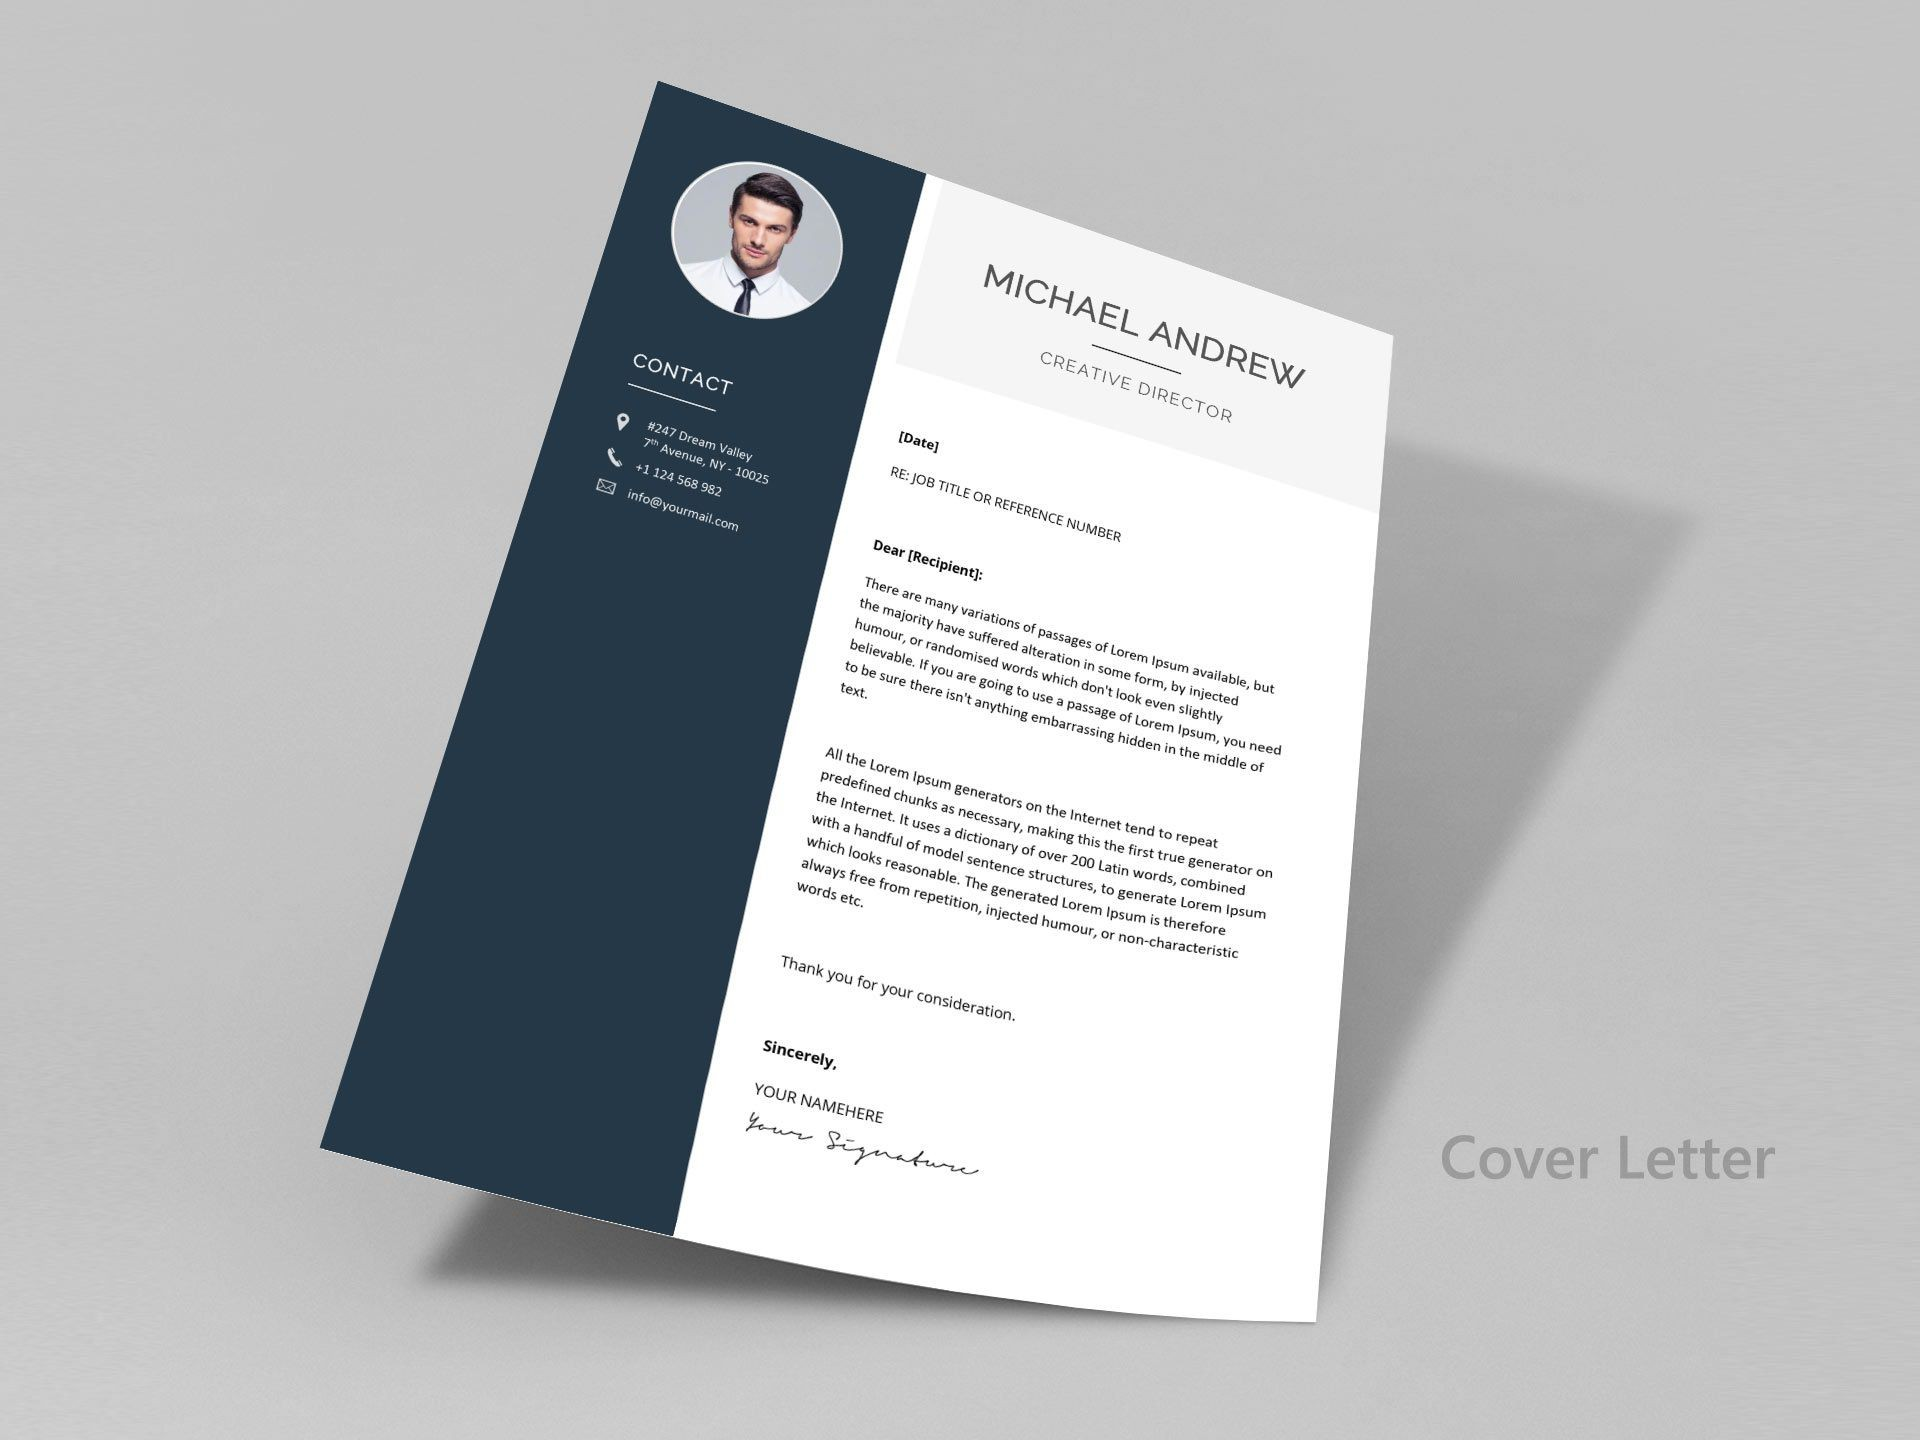 009 Stupendou Curriculum Vitae Template Free Concept  Sample Pdf Download For Student Doc1920